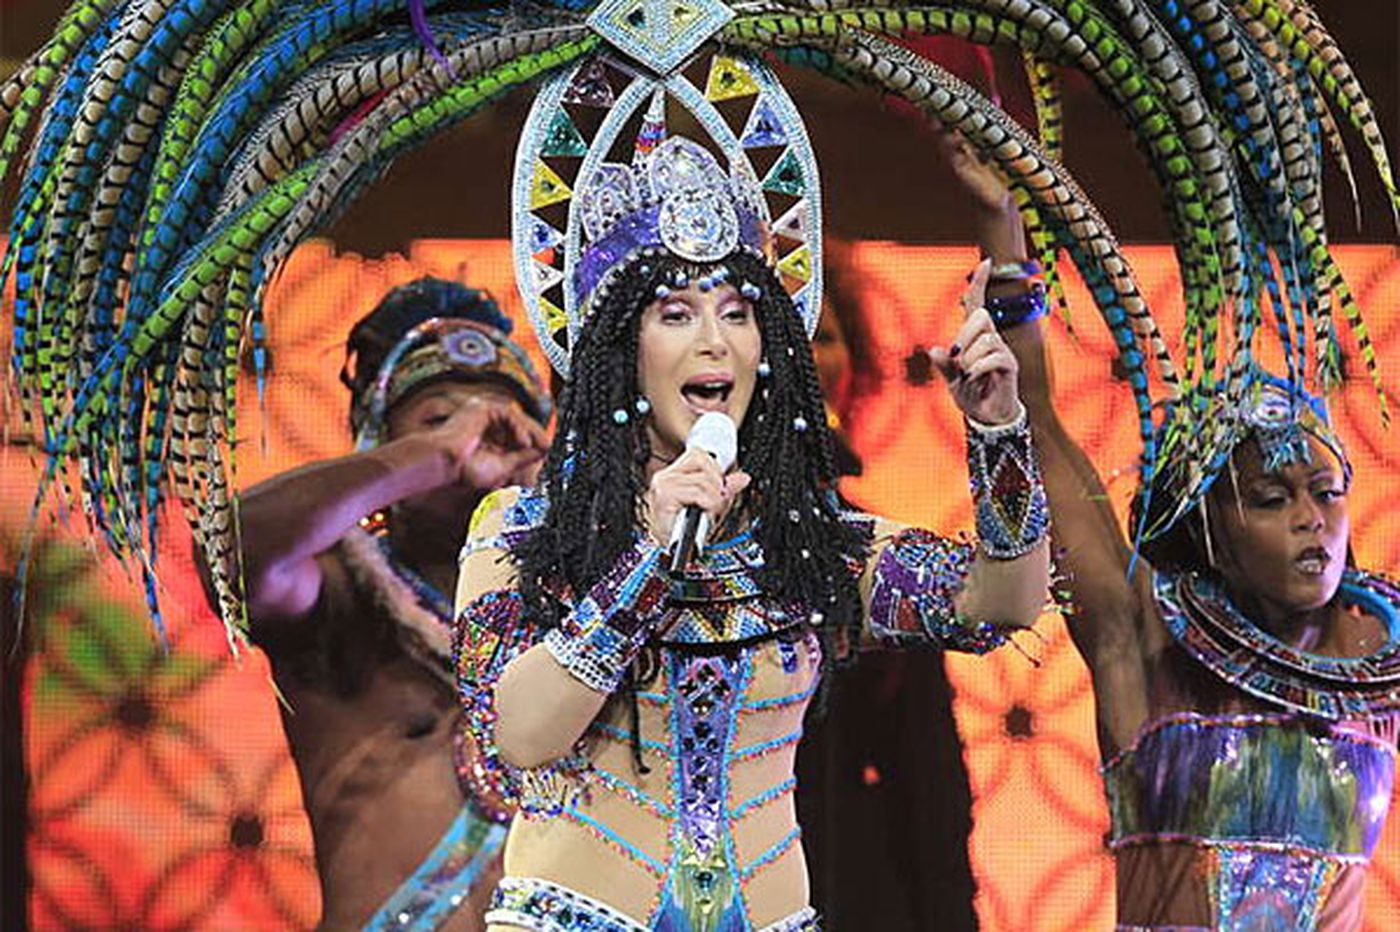 Concert review: Cher in fine voice and costume at Wells Fargo